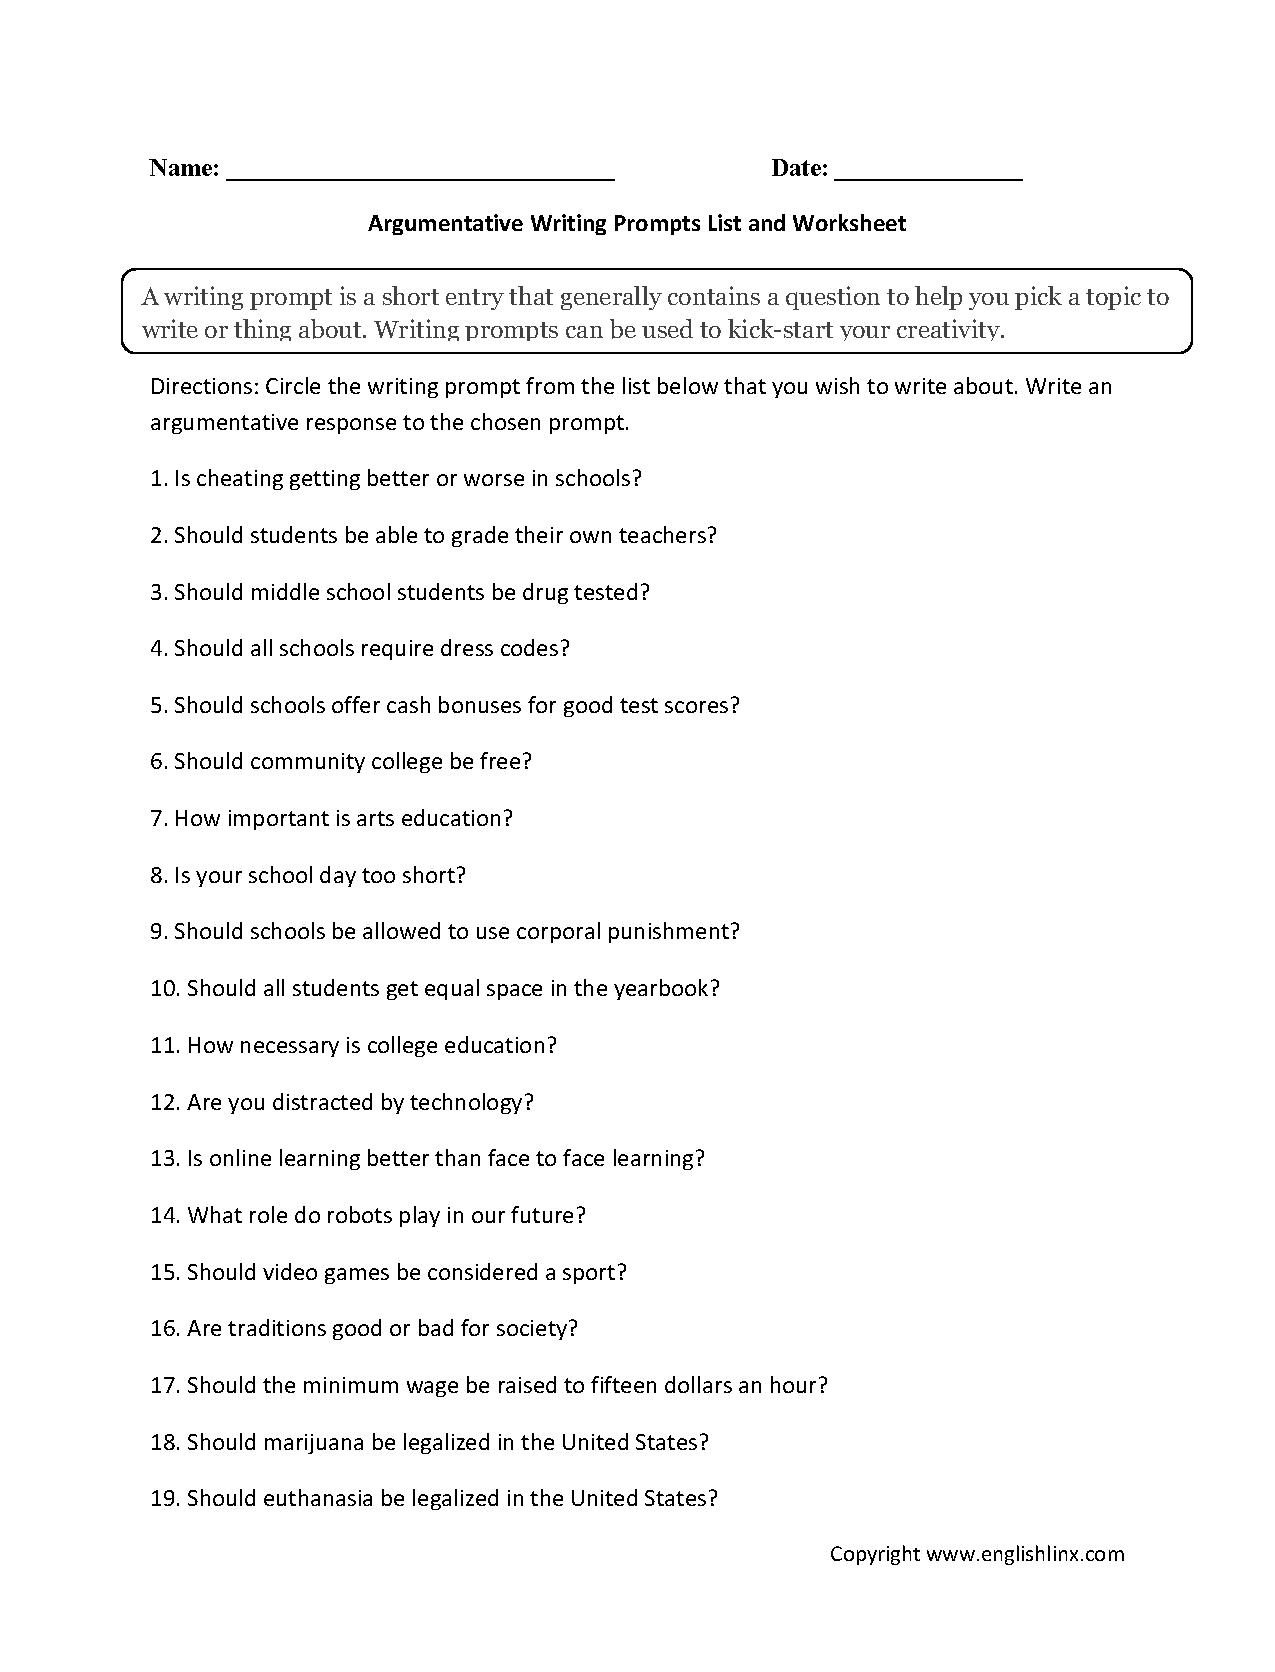 008 Argumentative Research Papers On Technology Paper Writing Prompts List Top Topics Full